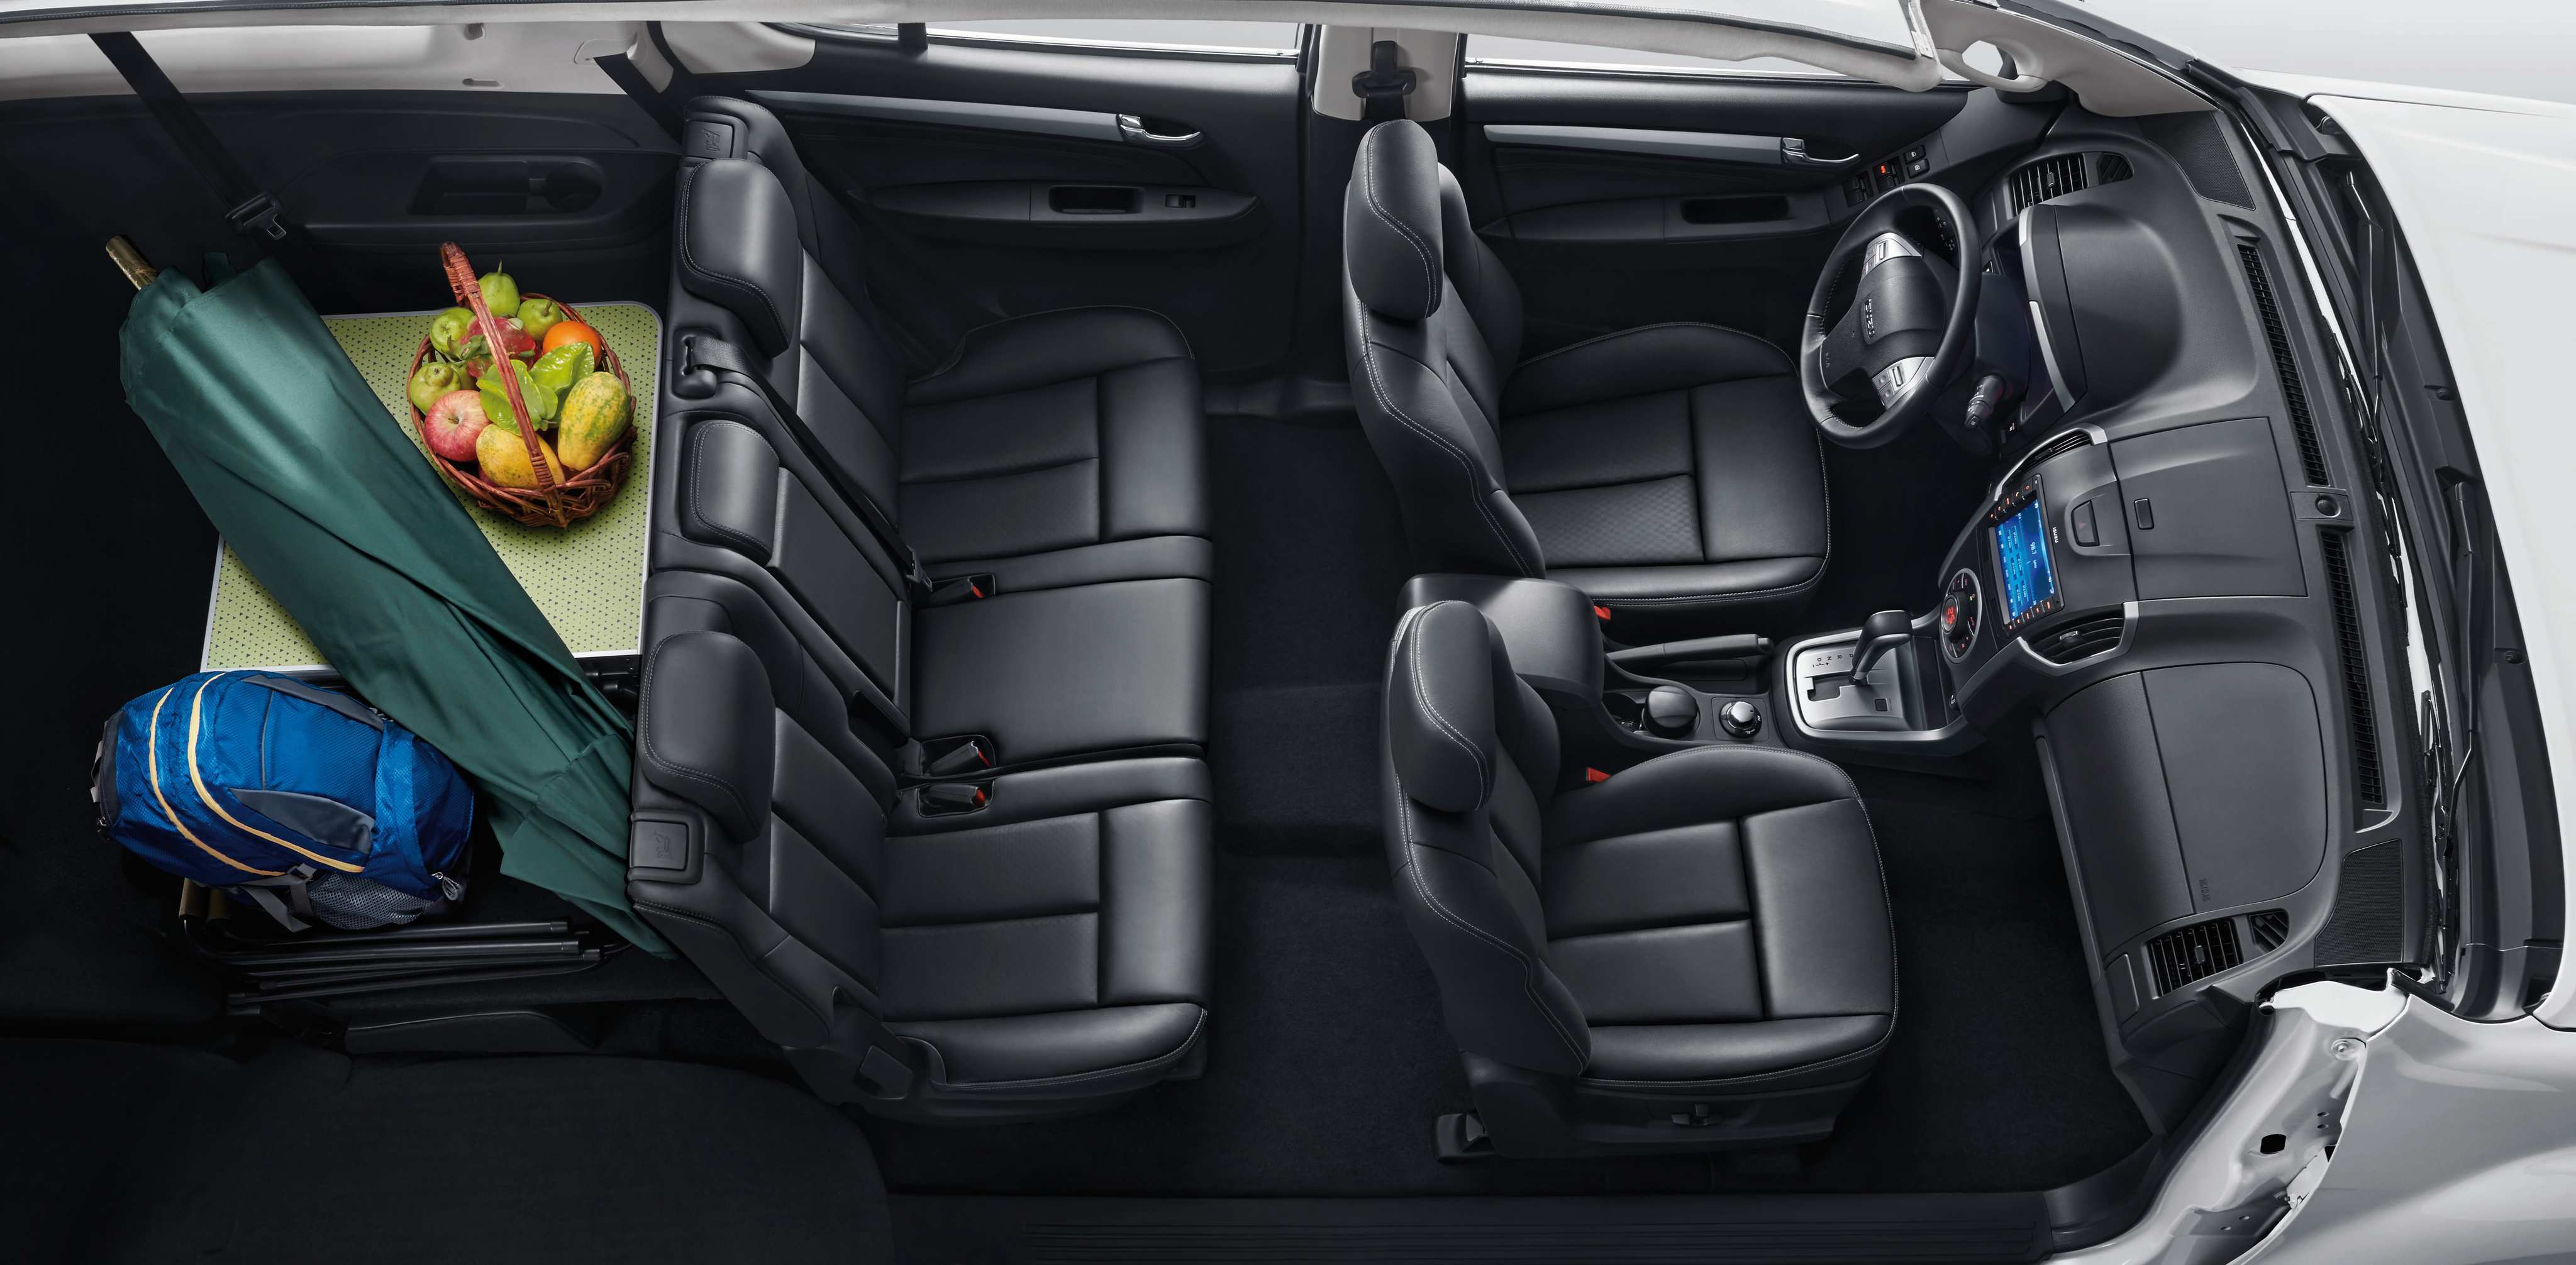 13 Great Isuzu Mu X Interior Wallpaper for Isuzu Mu X Interior